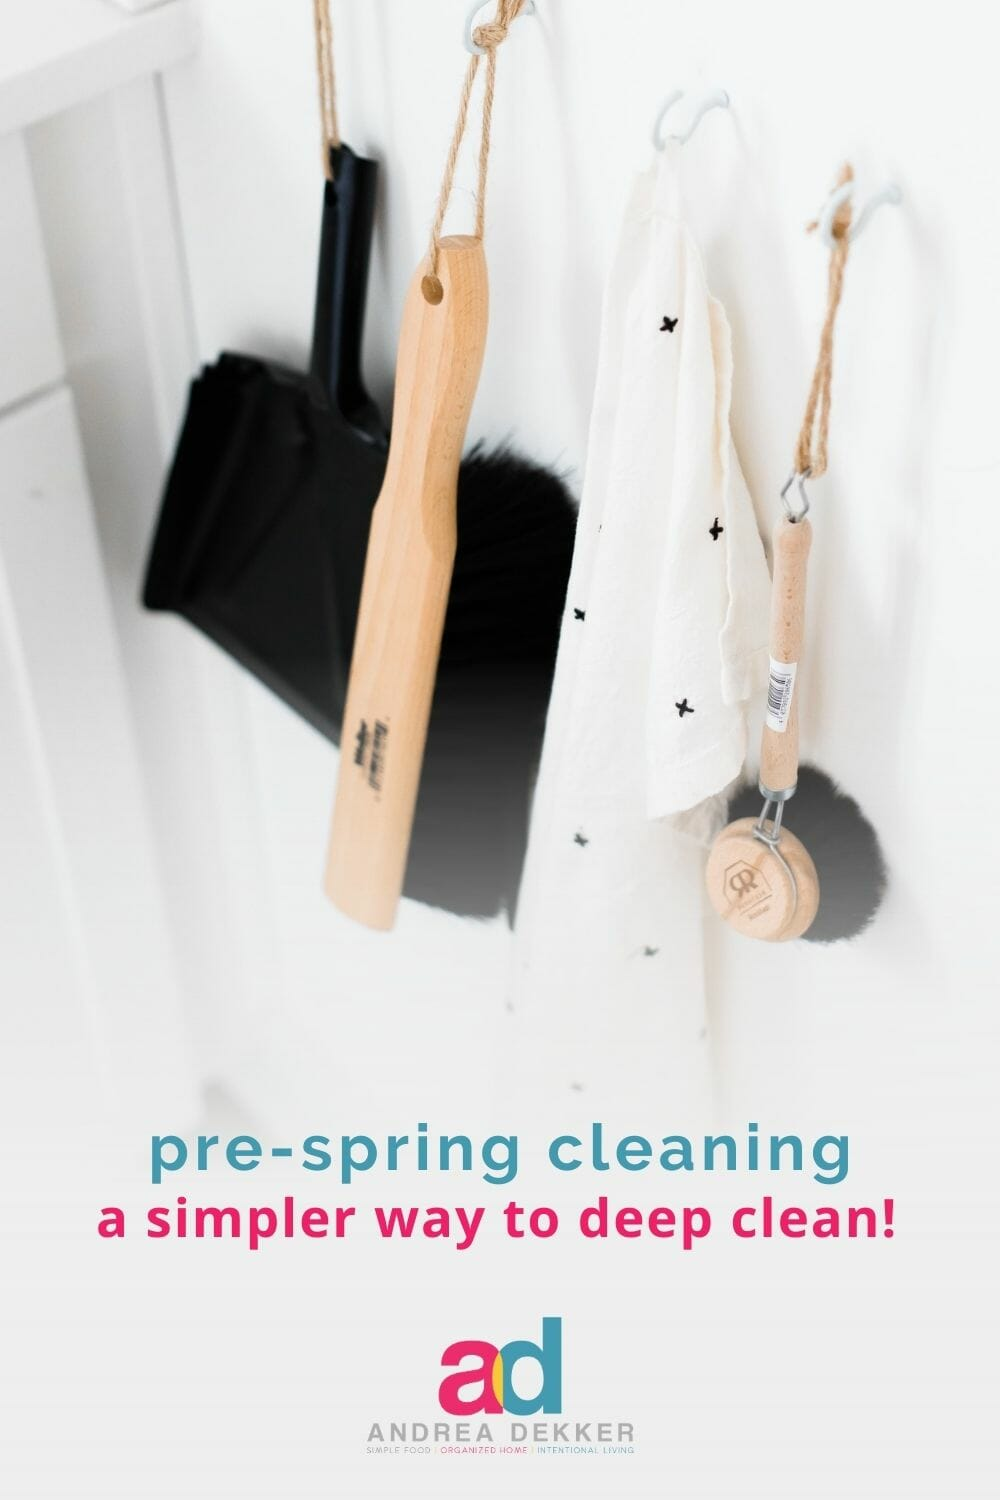 """Do you enjoy a thoroughly deep-cleaned home but don't have the time or energy for a proper top-to-bottom """"Spring Cleaning""""? If so, you'll love my pre-spring cleaning method. It's a fantastically simple way to deep clean your home in no time at all! via @andreadekker"""